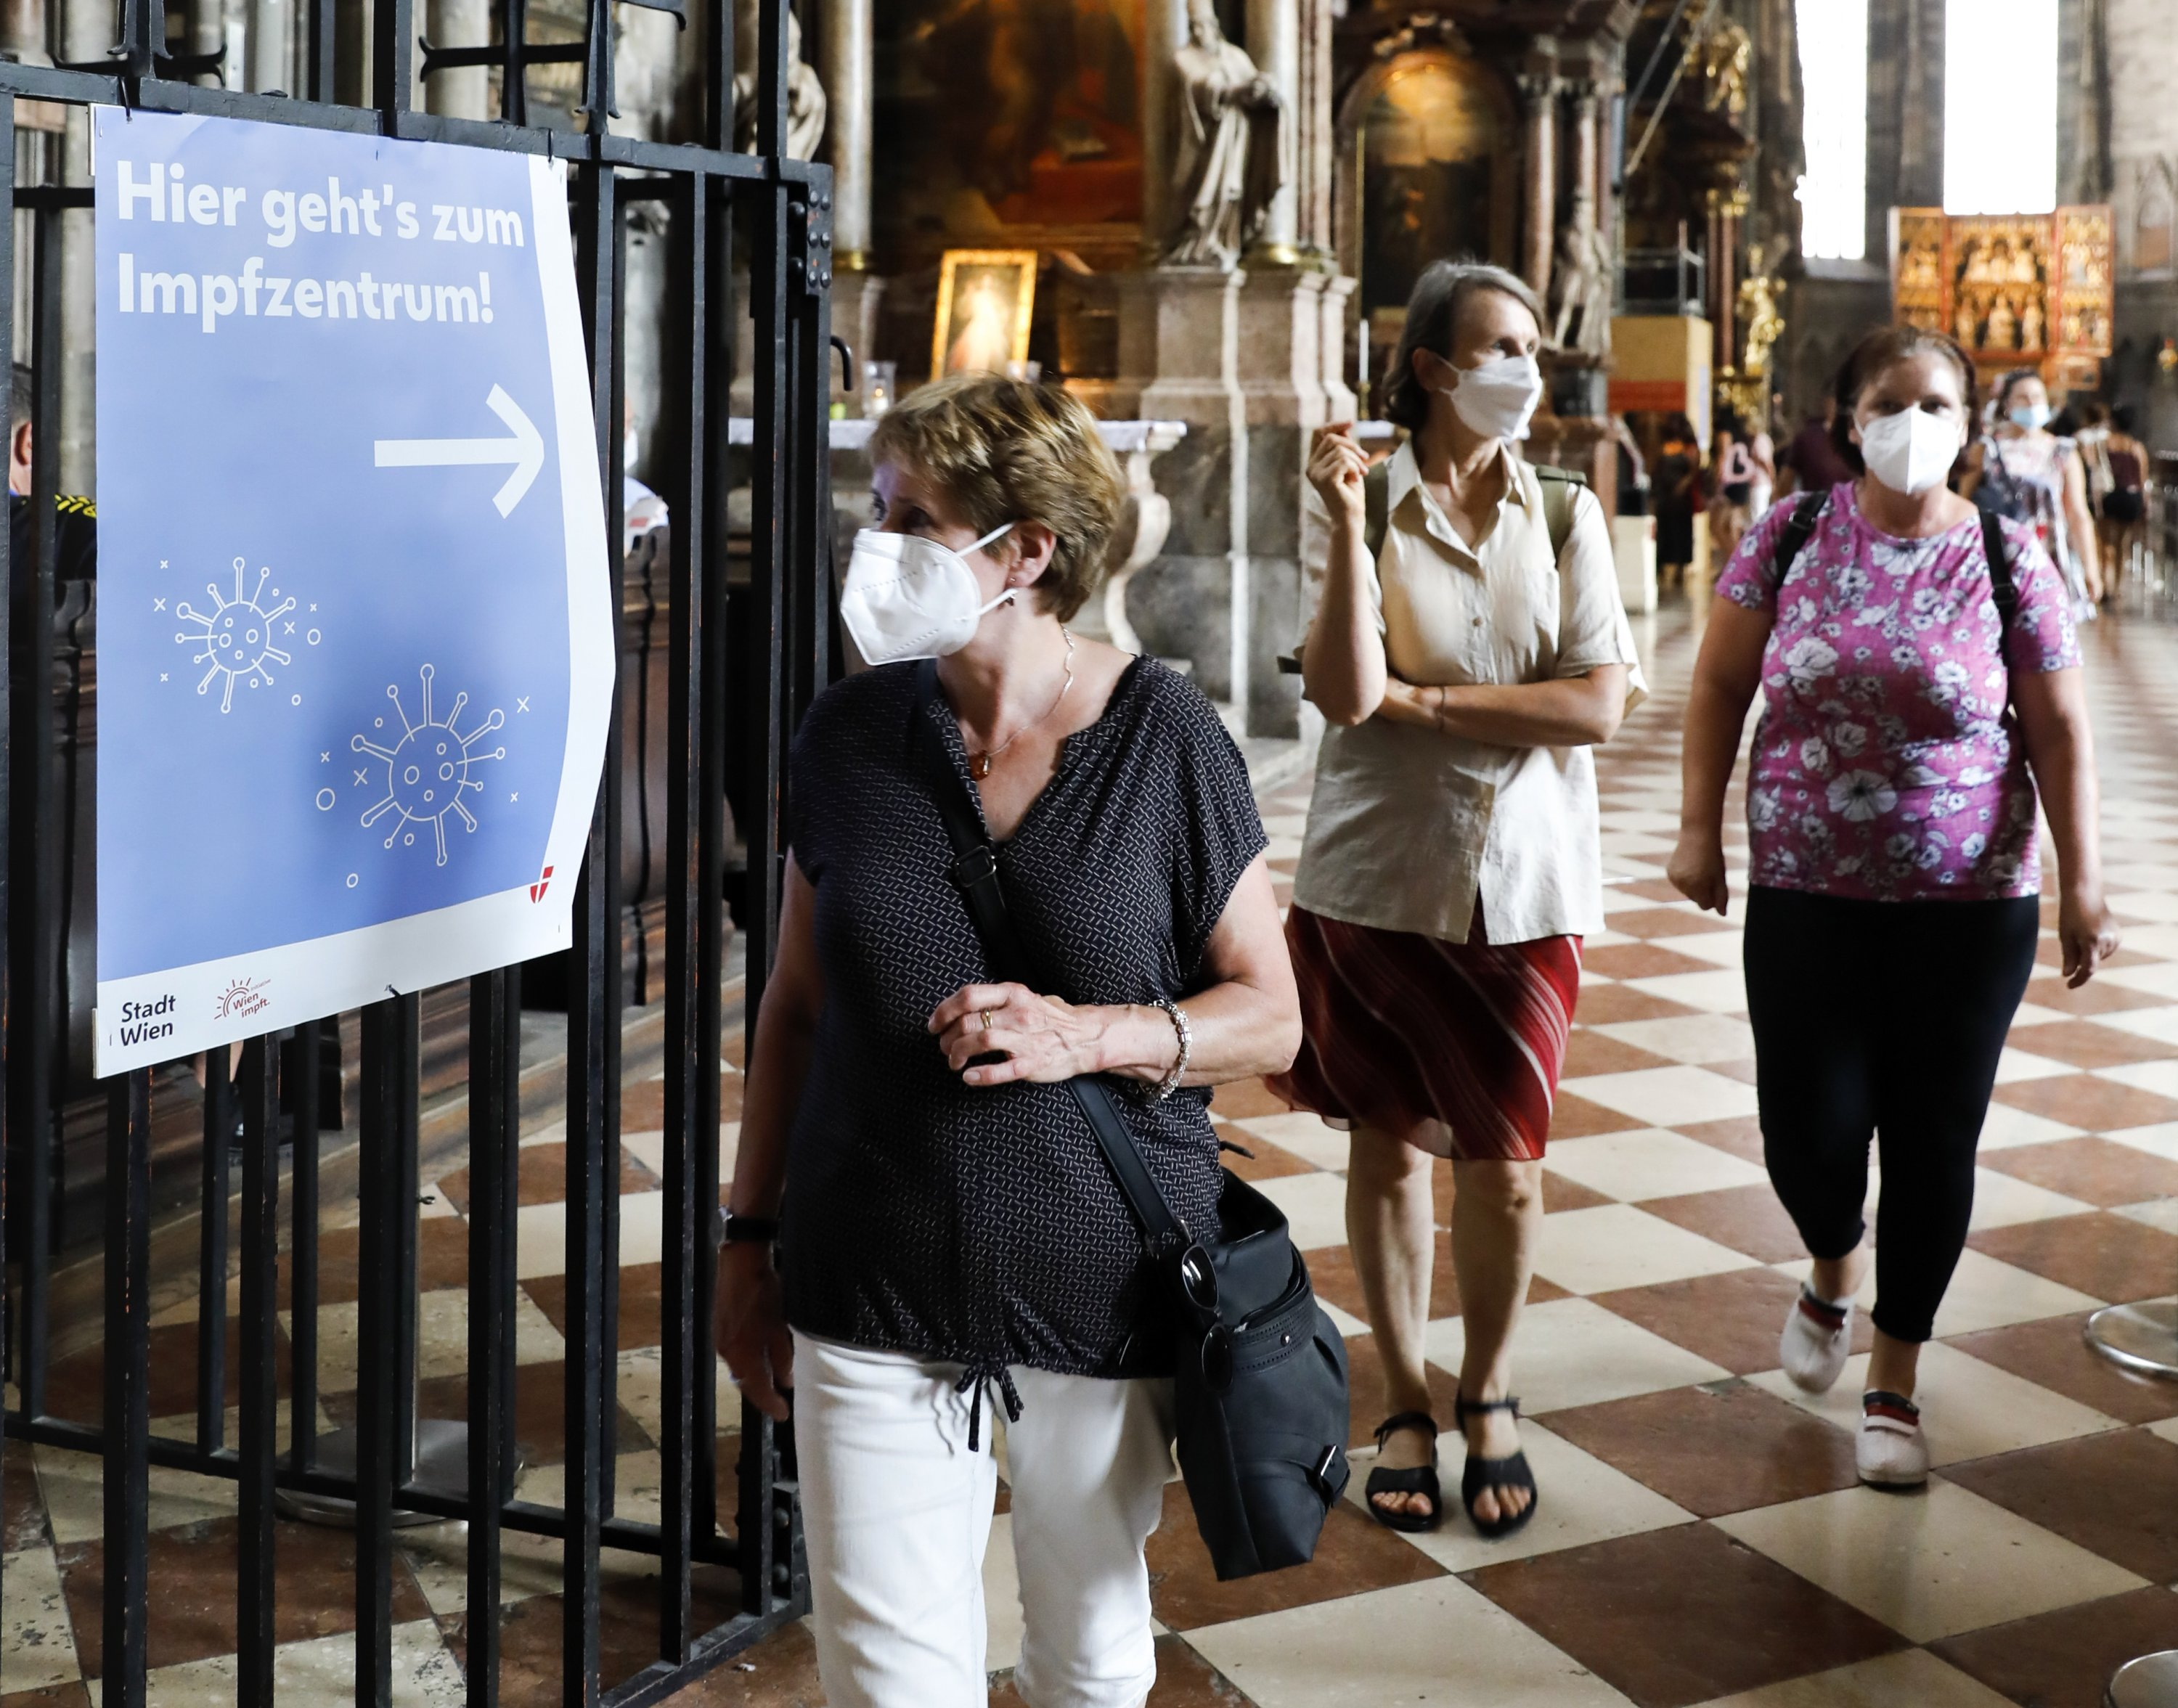 Vaccinations against the COVID-19 disease are offered now in one of Austria's most iconic buildings, the St. Stephan's Cathedral in the city center of Vienna, Austria, Friday, Aug. 13, 2021. There is a sign on the left, which says translated: 'this way to the vaccination center.' (AP Photo)